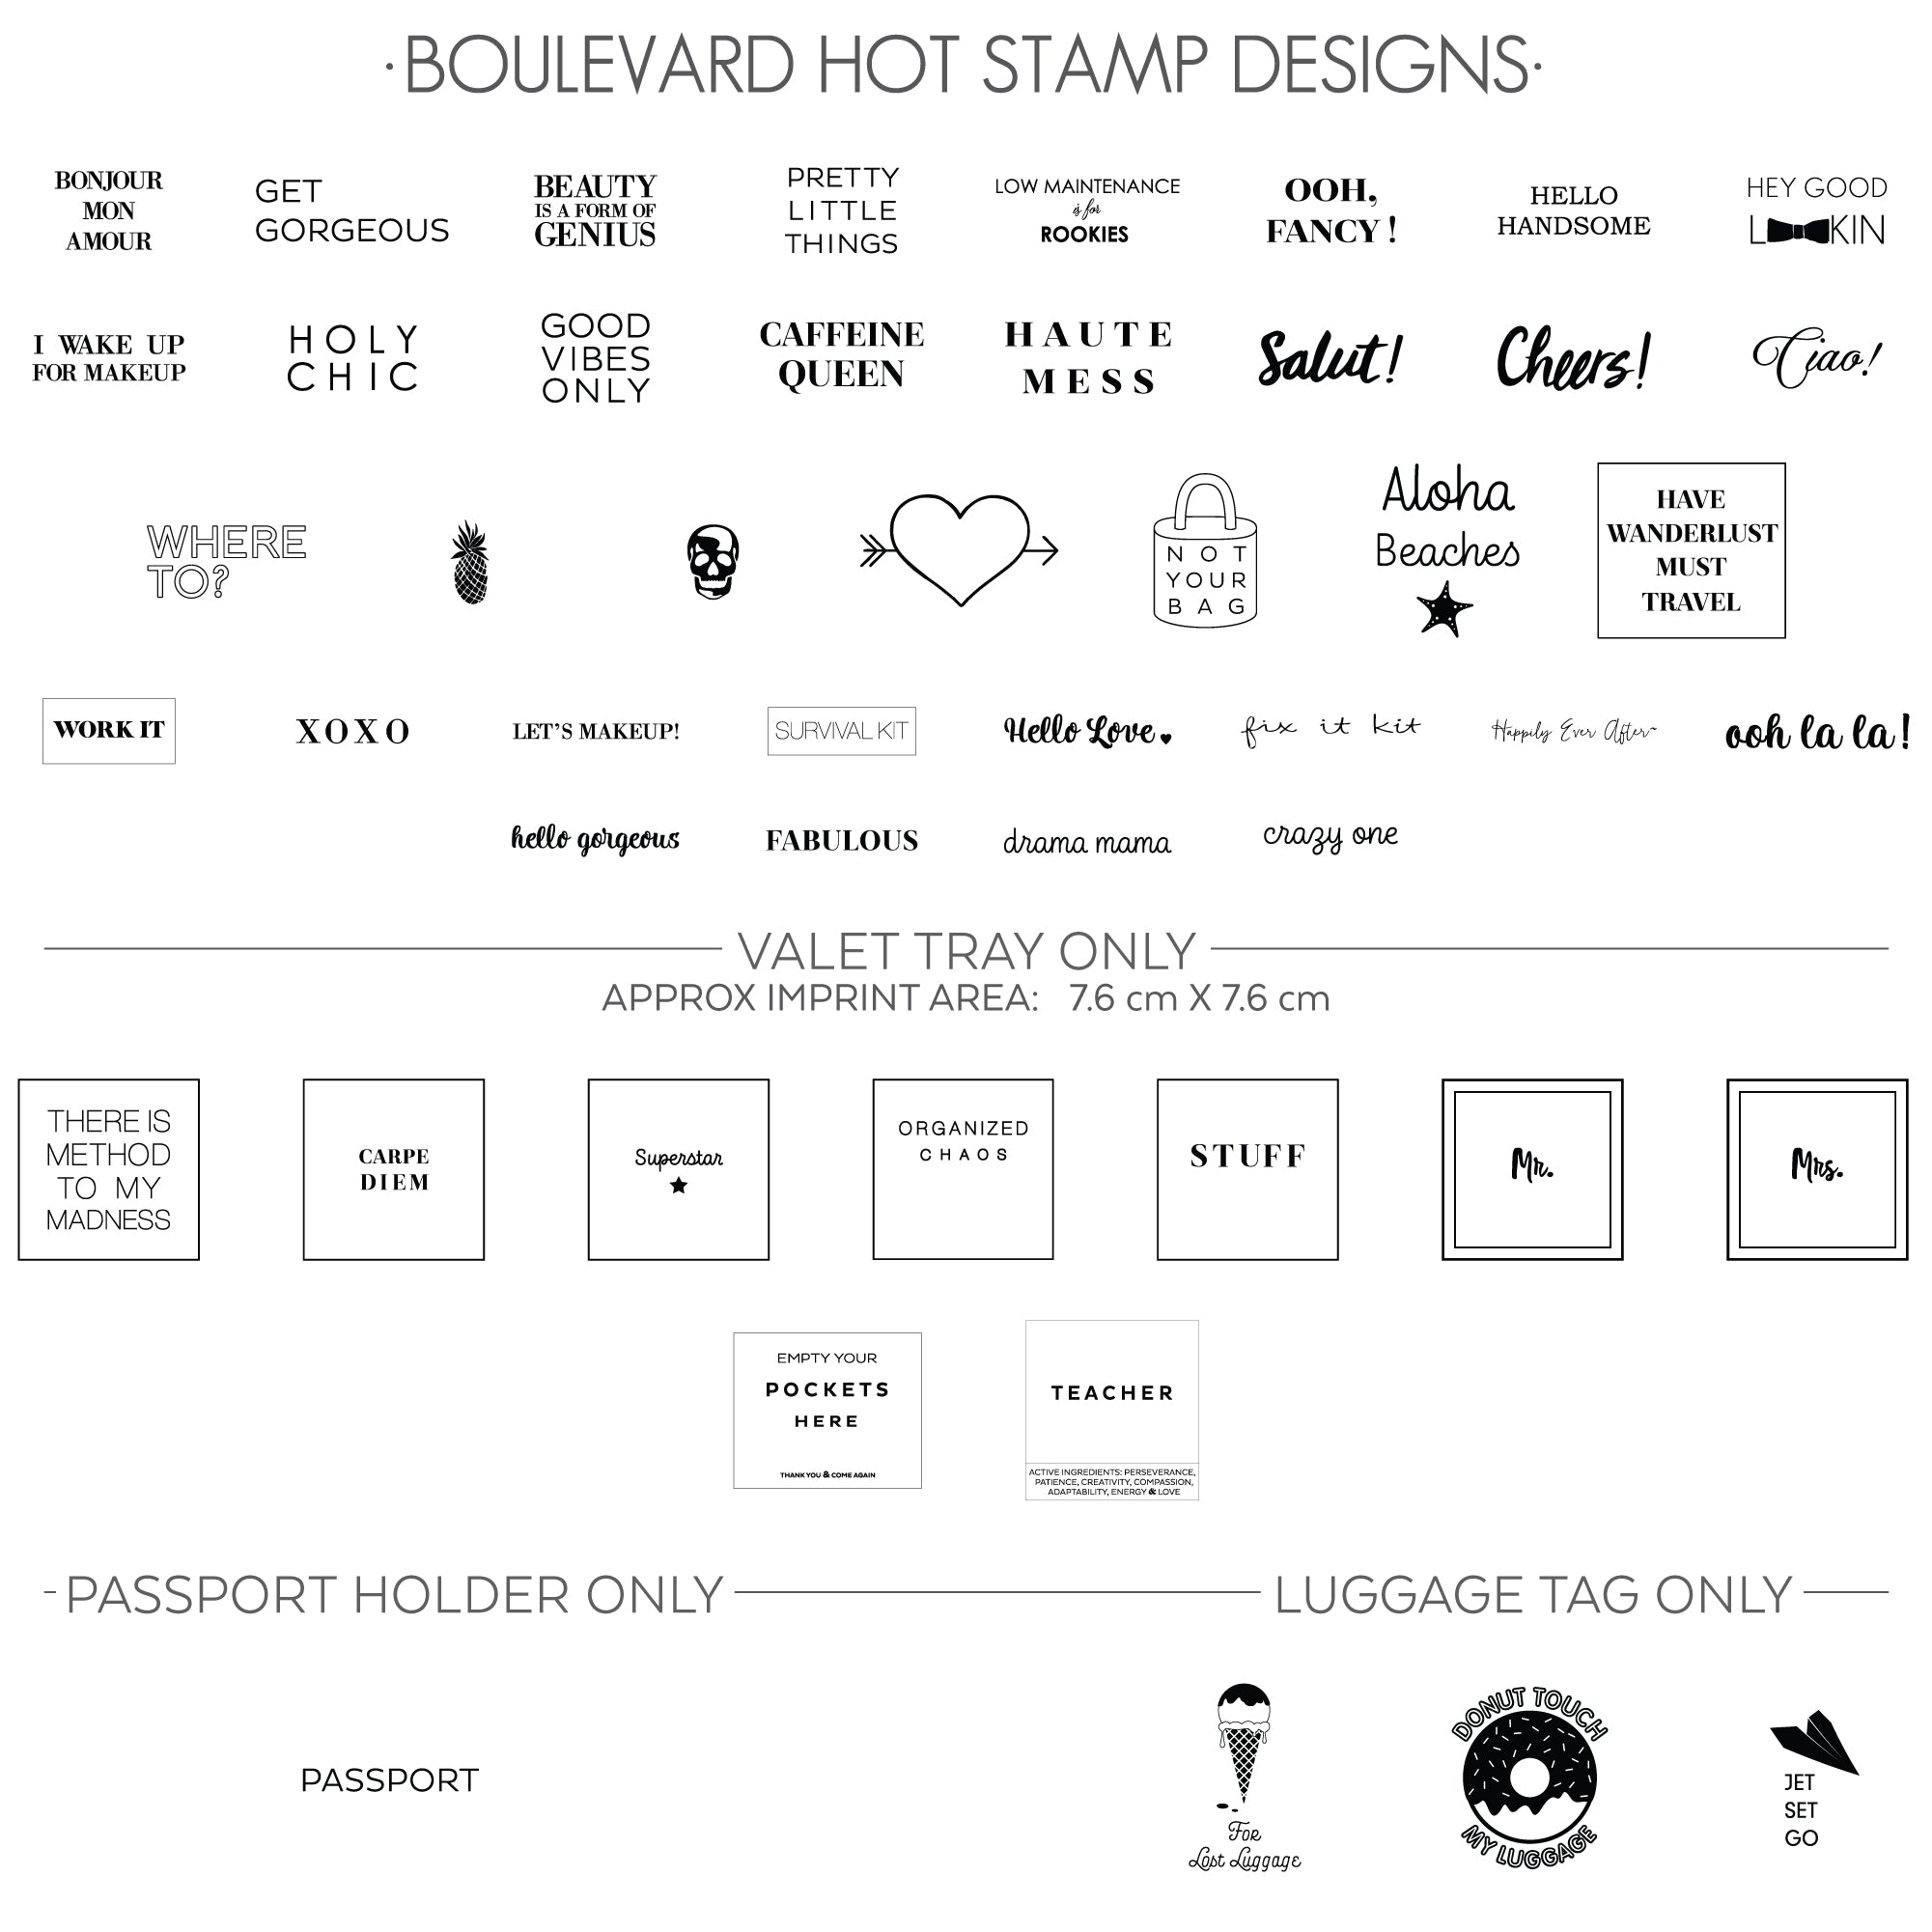 BLVD HOT STAMP DESIGNS